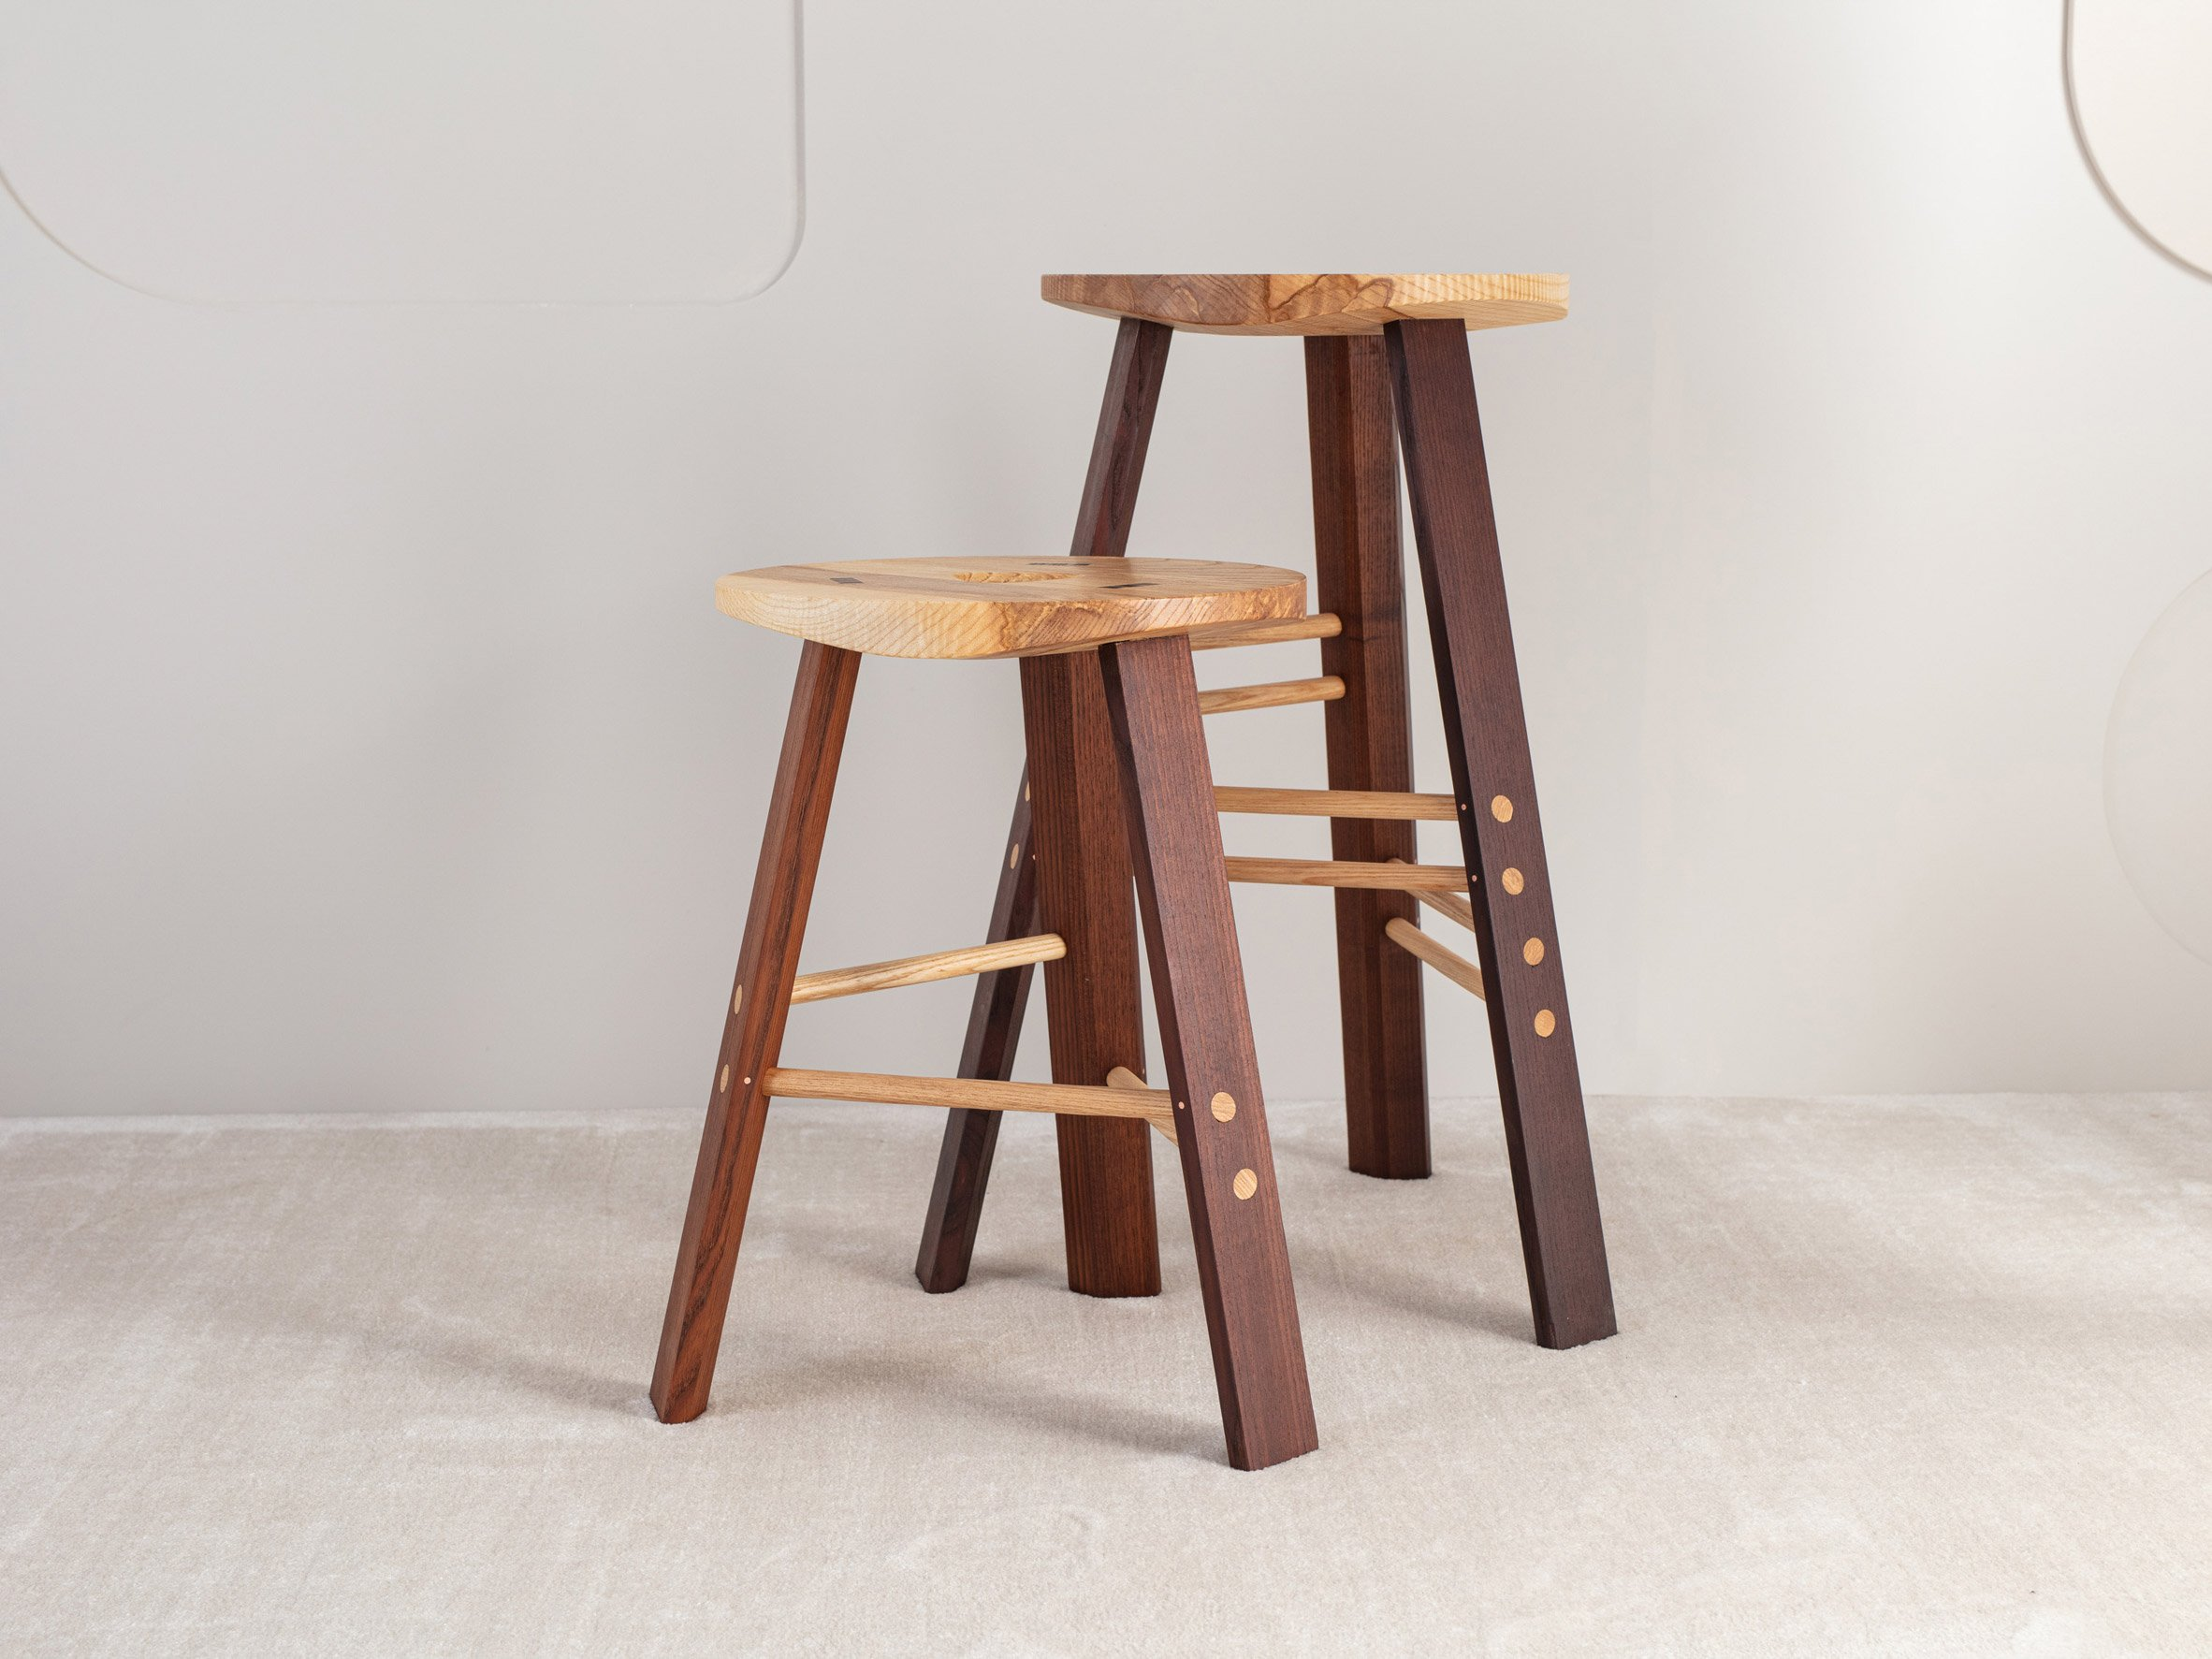 The cable shop stool from Jan Hendzel Studio's collection made using British hardwood